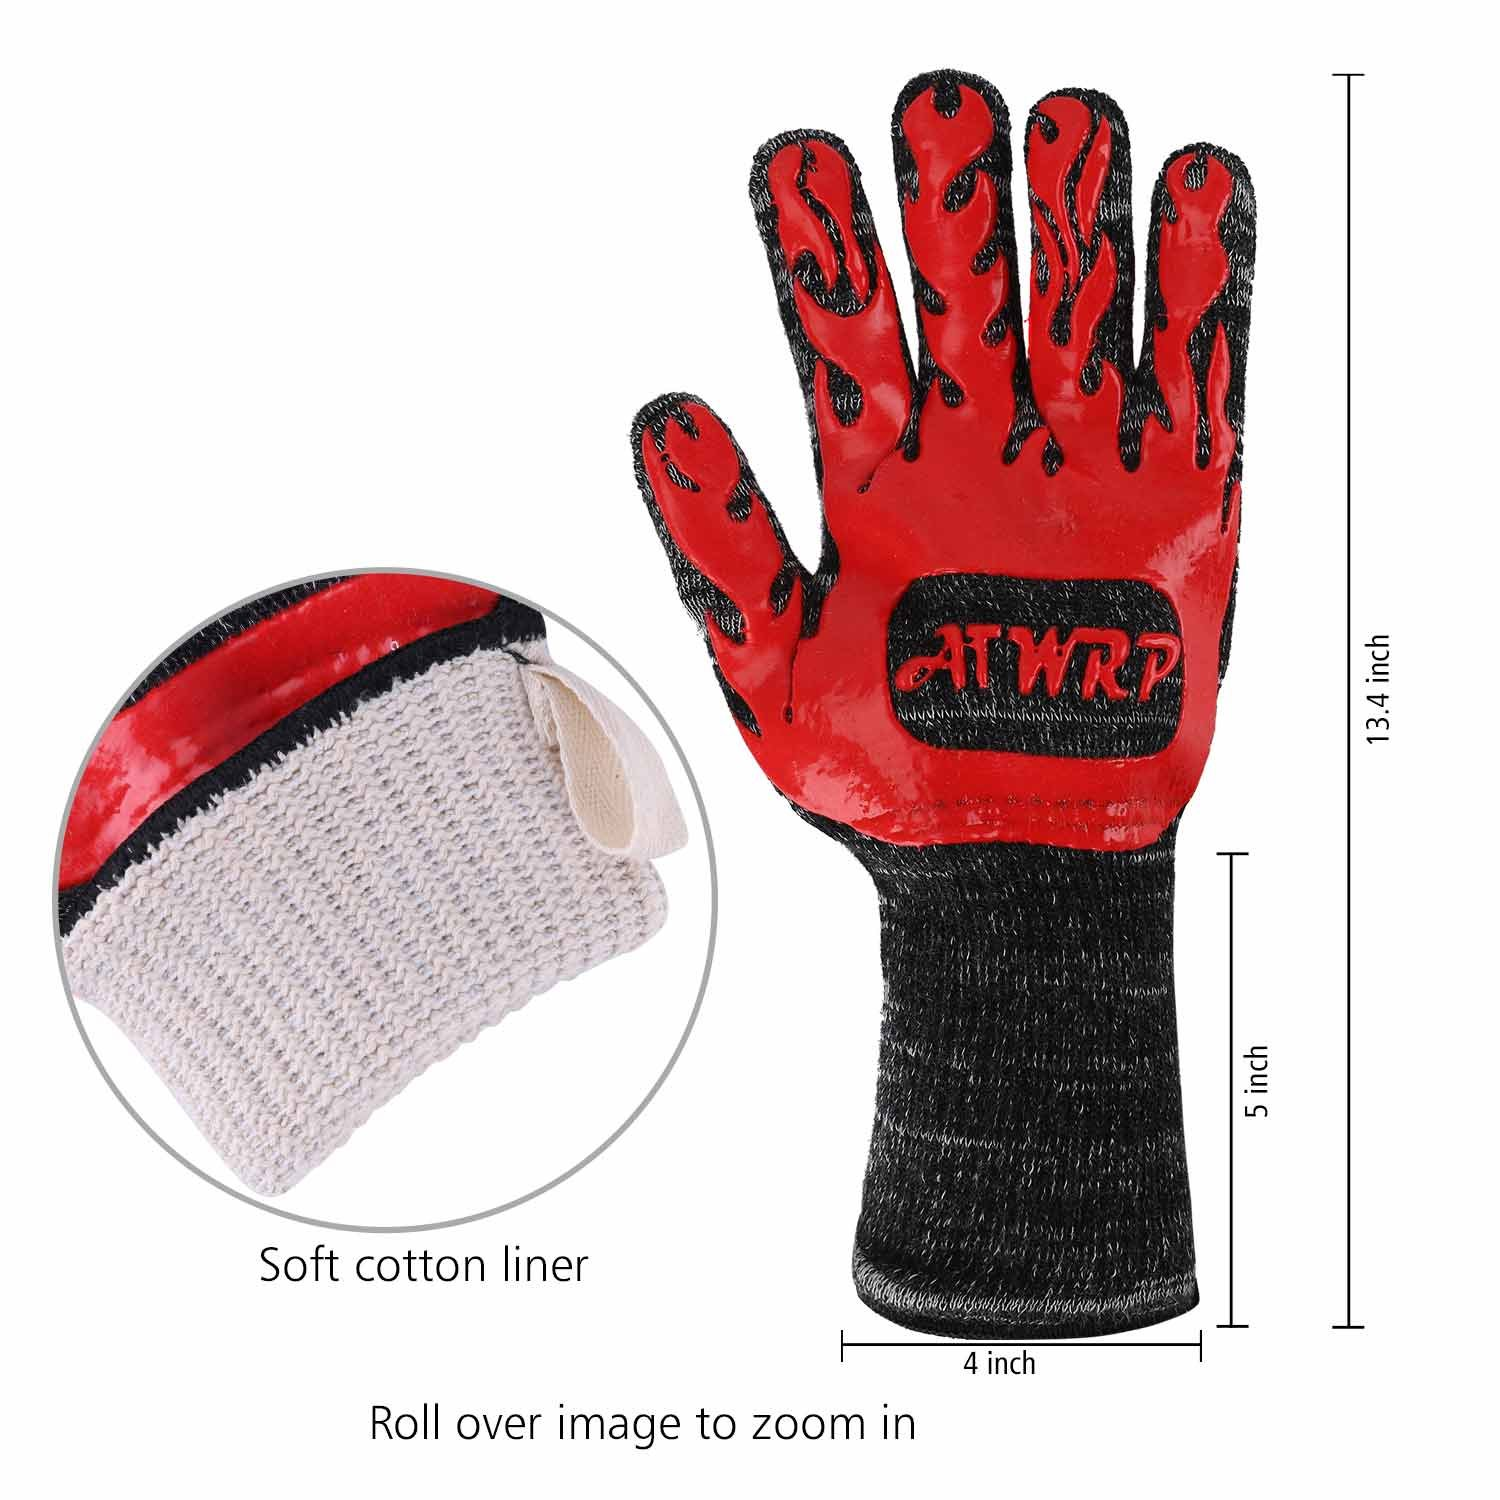 ATWRP FIREPROOF 932°F Extreme Heat Resistant BBQ Gloves by for Cooking Grilling Barbecue Charcoal Grill Smoker Tools Hot Ovens with Fingers Double Layered by ATWRP (Image #5)